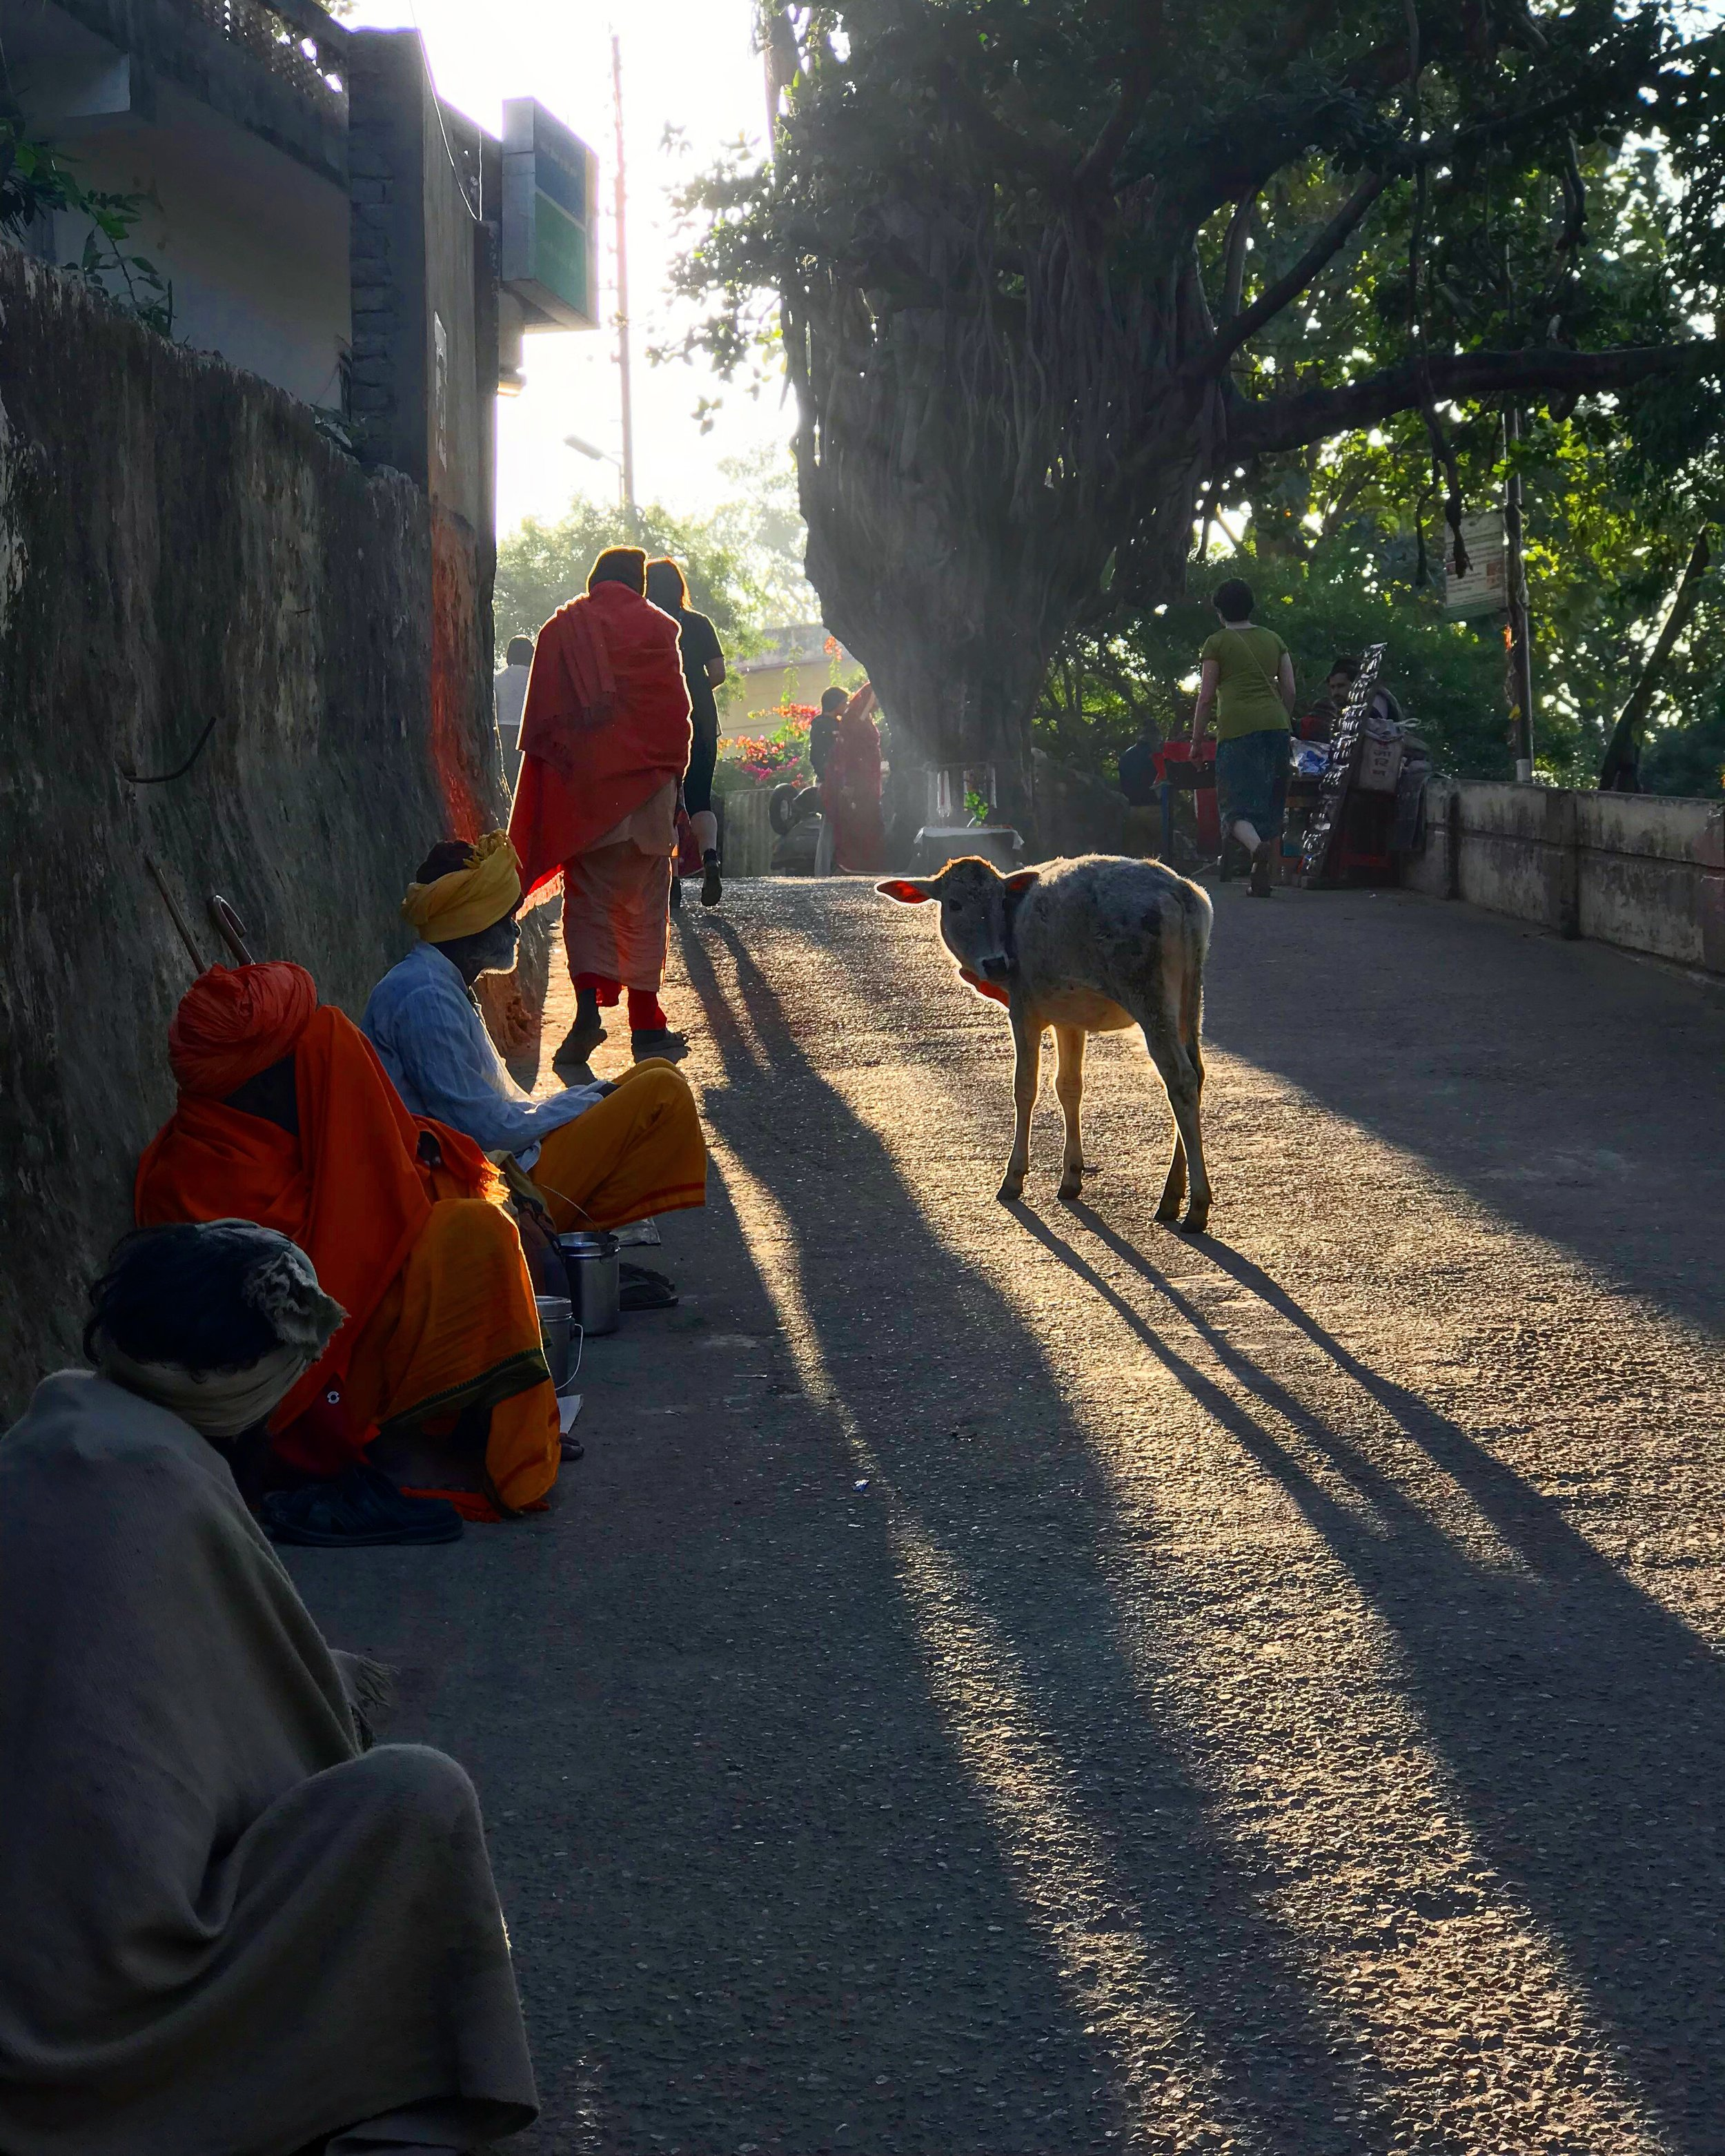 I love the light flooding down the street in this shot here with the Baba's peacefully sat on the streets.